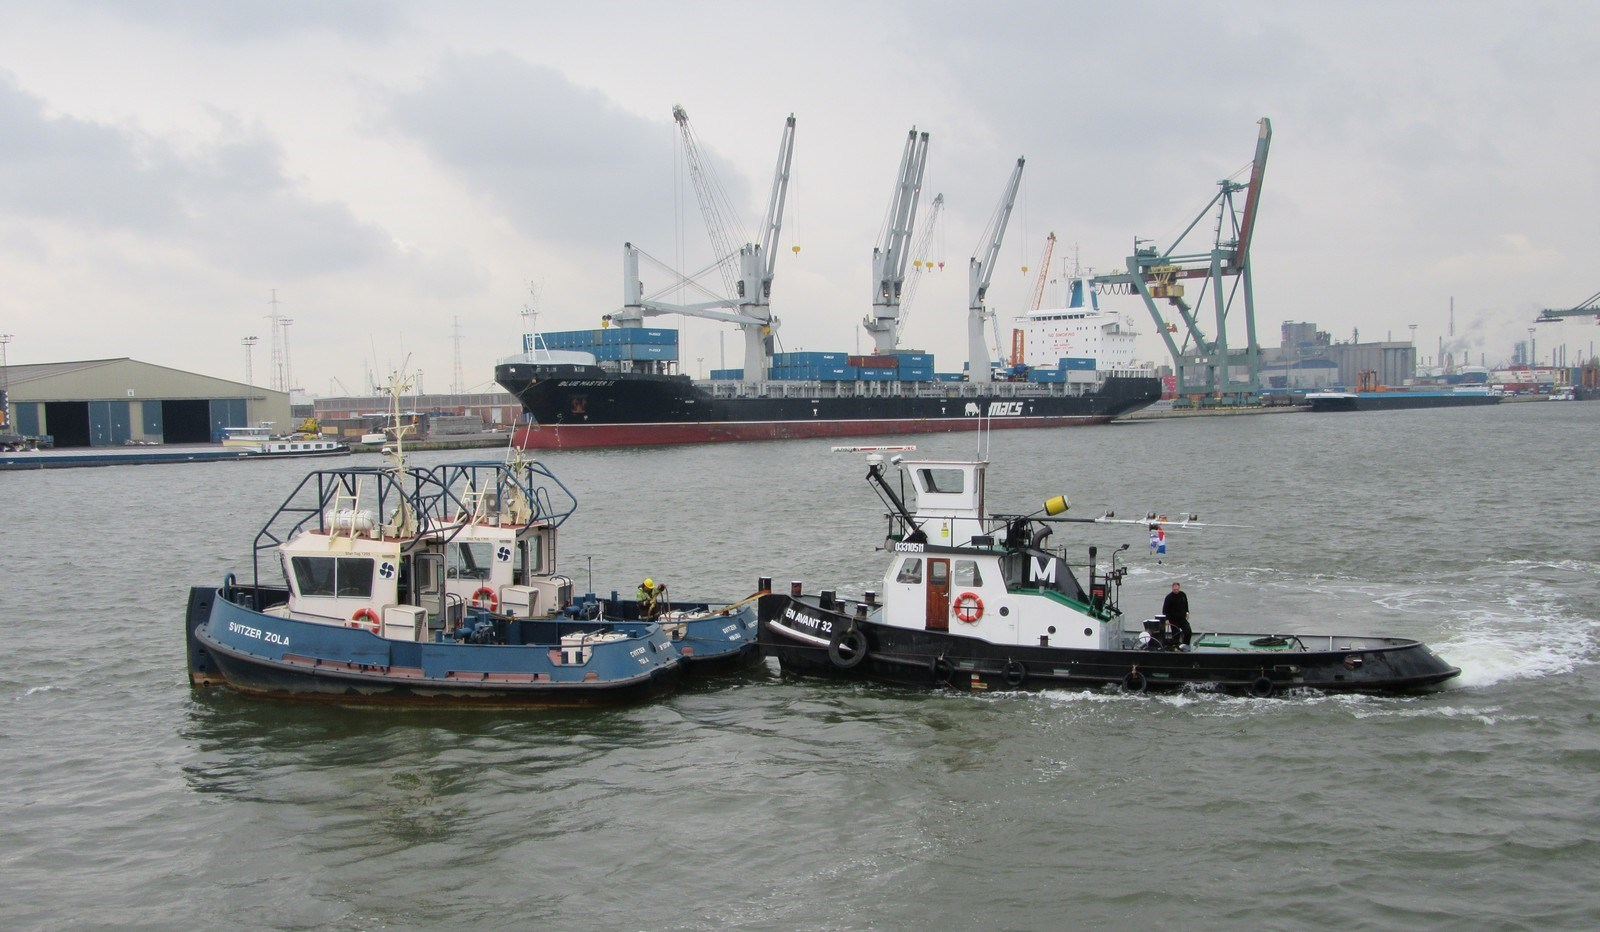 After a journey of exactly one month the two sister Damen Stan Tugs 1205 arrived in the Port of Antwerp